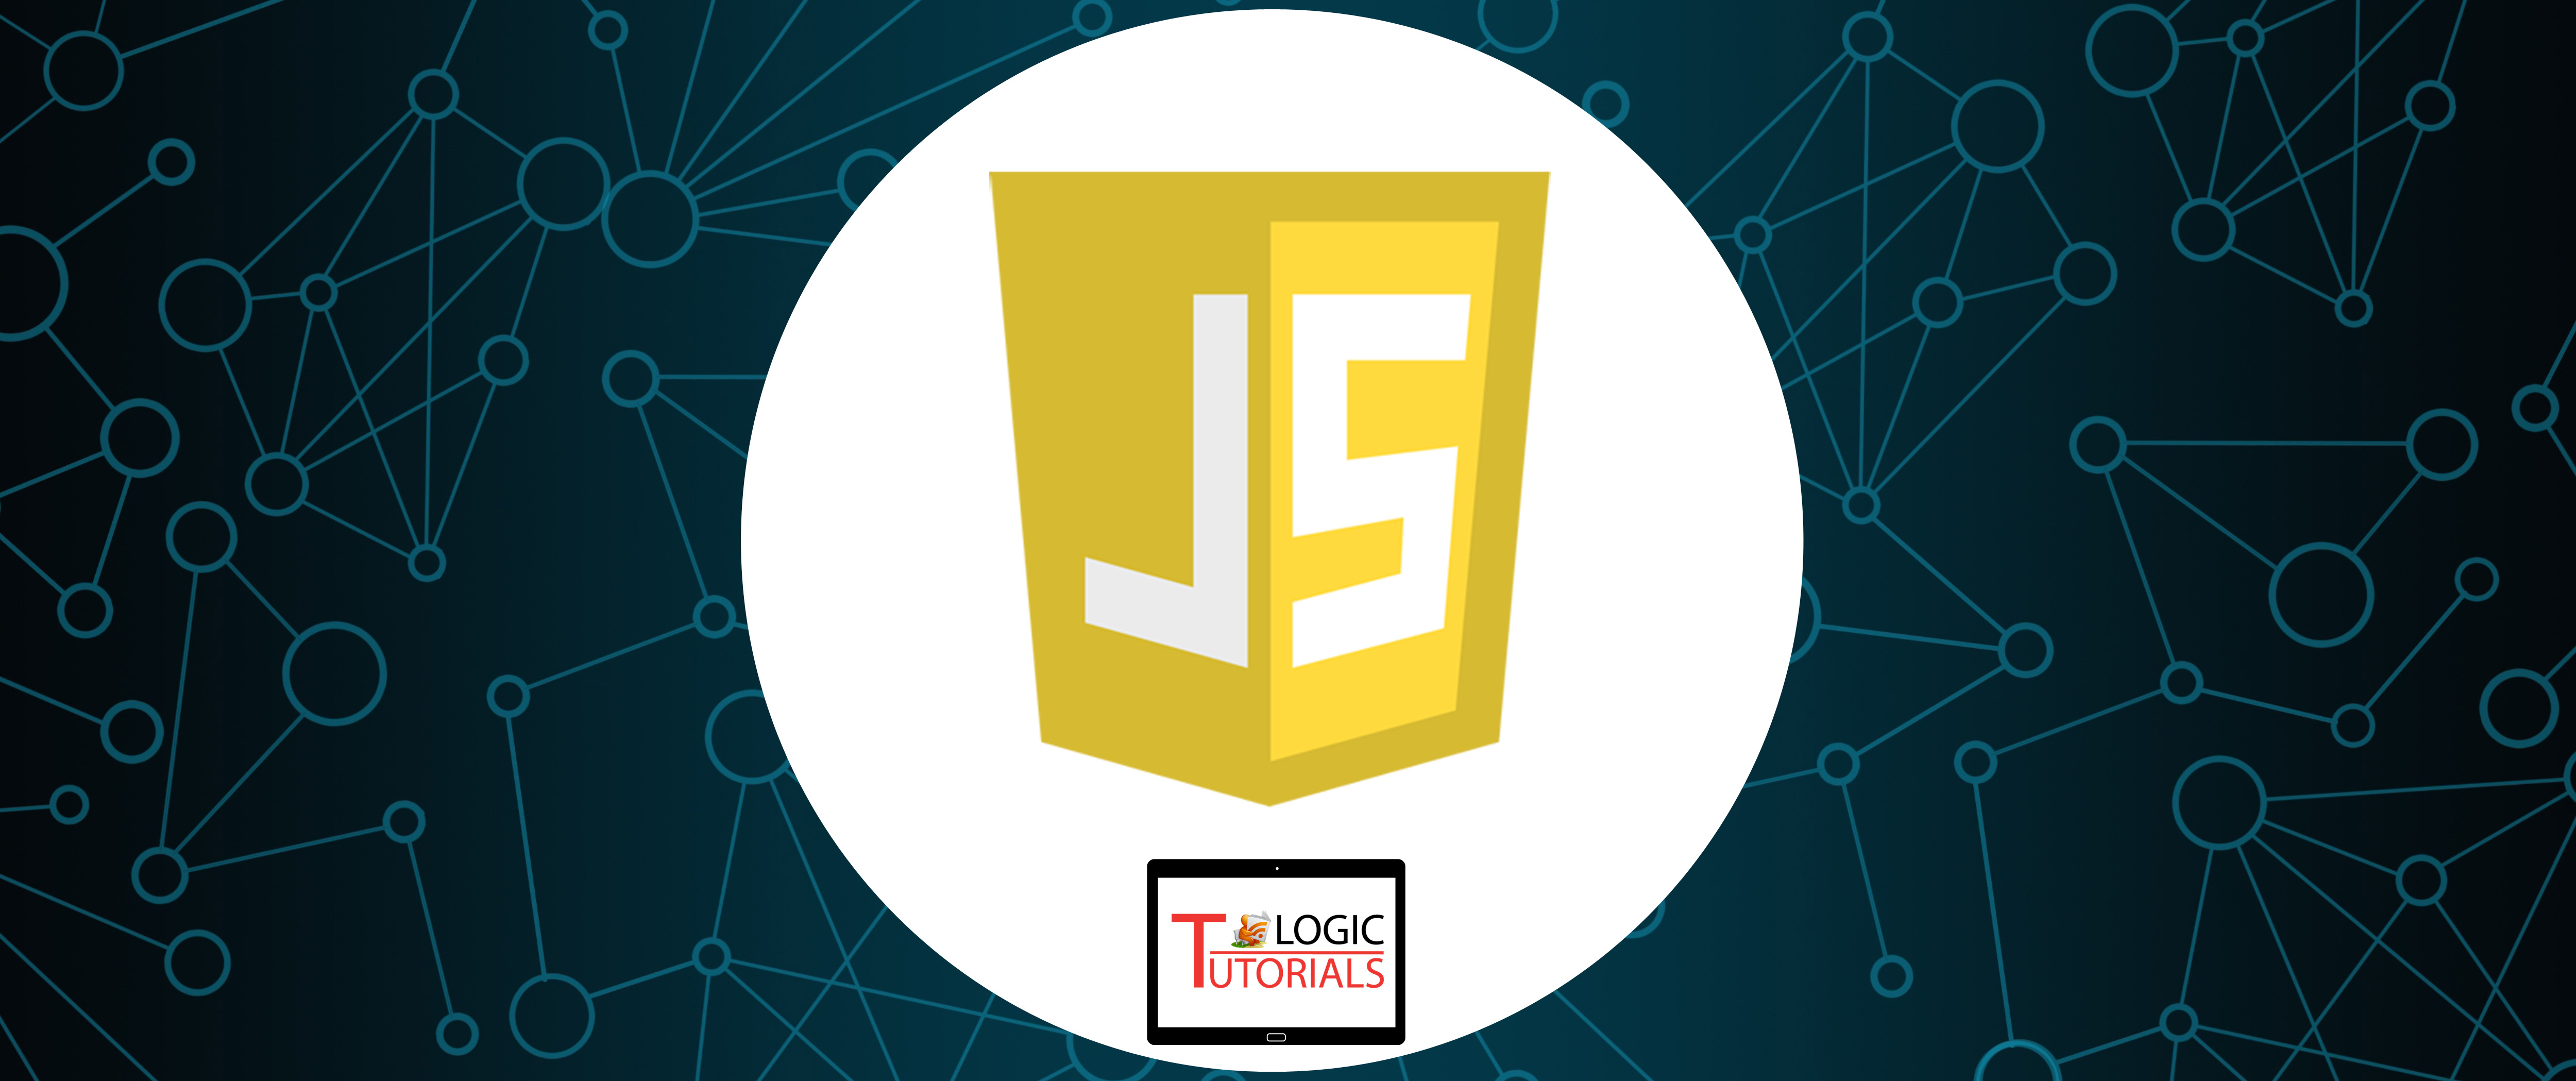 Javascript Tutorials Home - JavaScript is a platform-independent, event-driven, interpreted client side scripting and programming language.